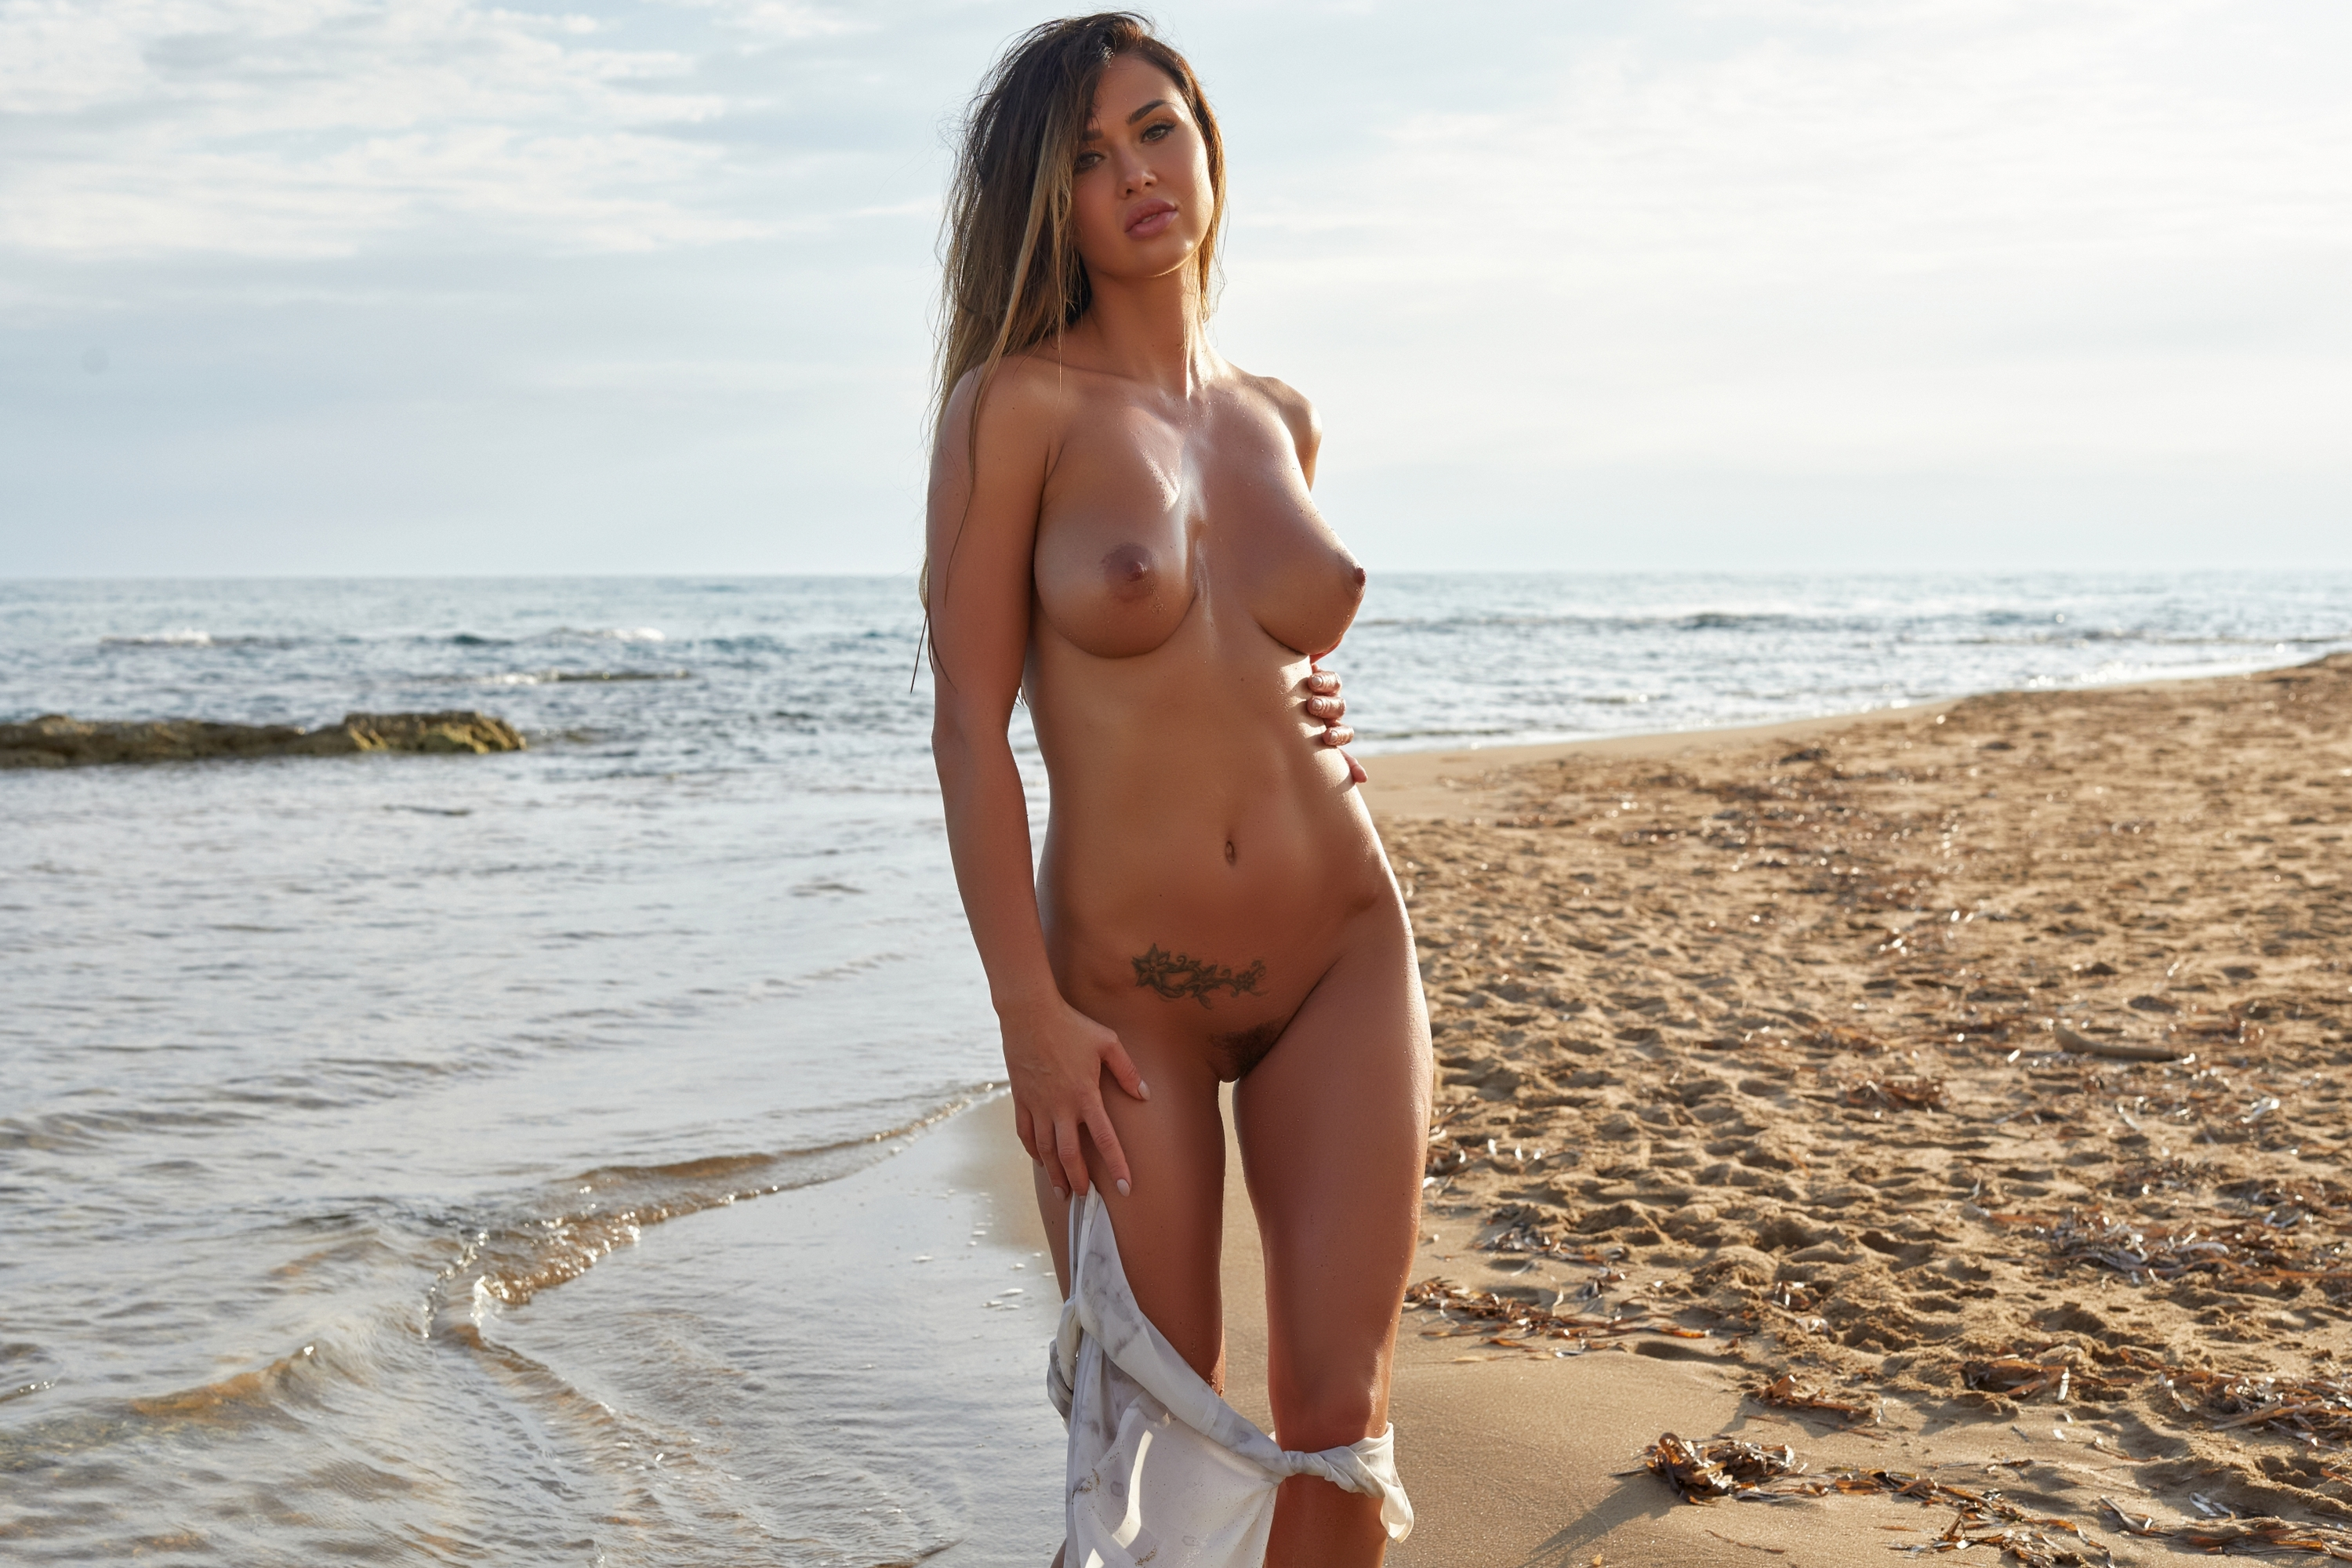 Download photo 1680x1050, justyna, beauty, naked, trimmed ...